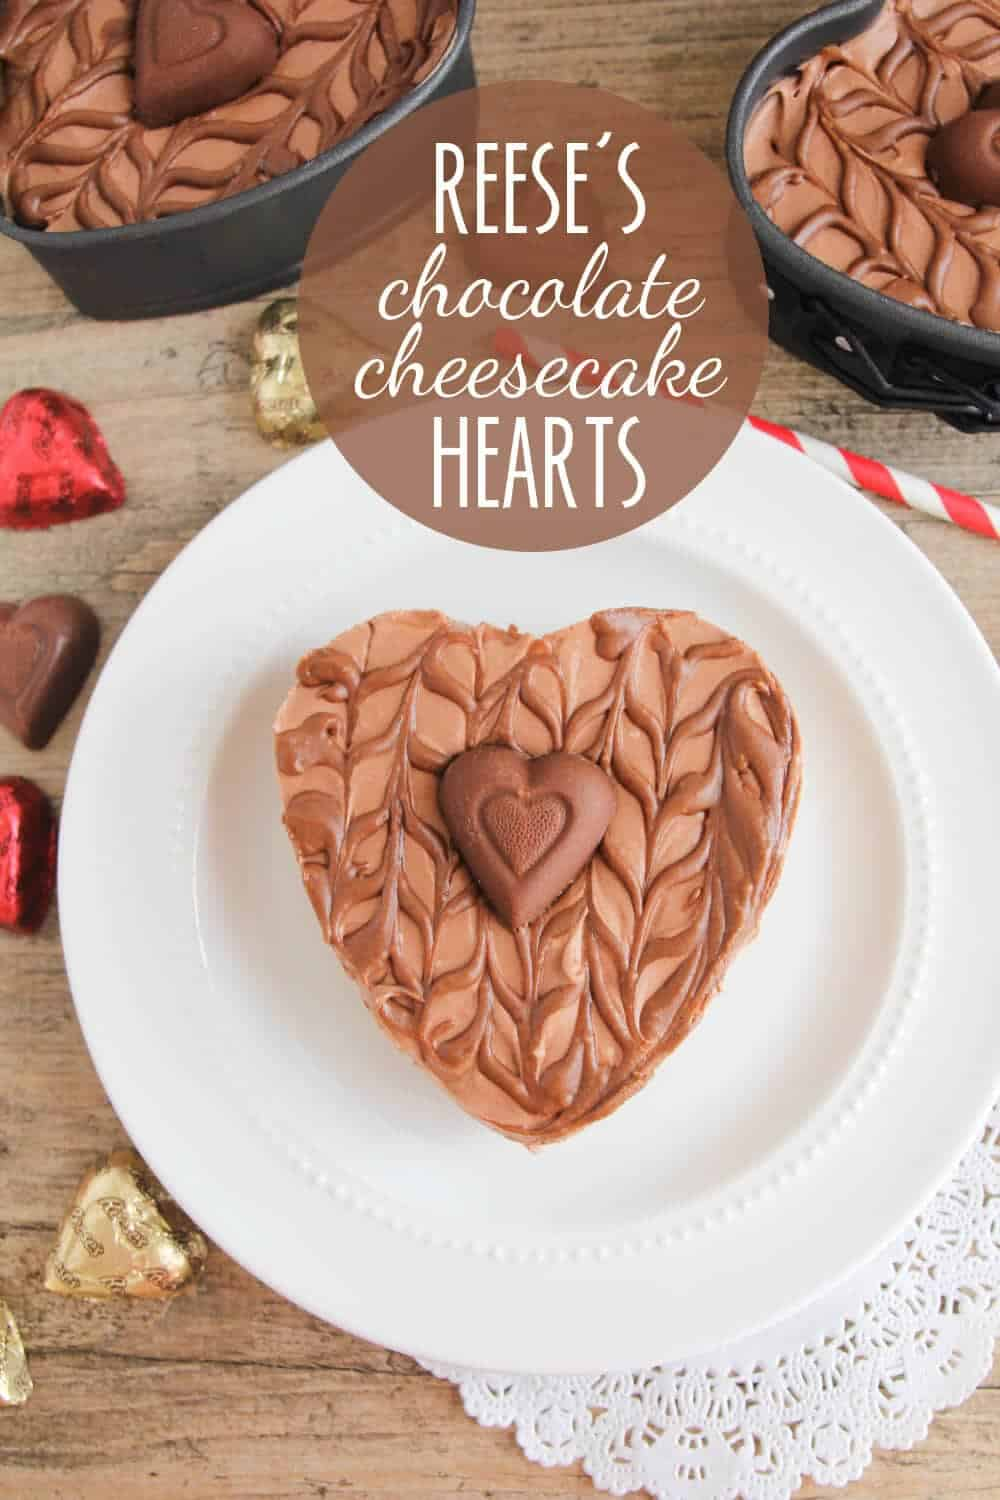 Reese's Chocolate Cheesecake Hearts - These rich and decadent mini cheesecakes are so simple to make and delicious too. An elegant dessert that's perfect for sharing with your sweetheart!